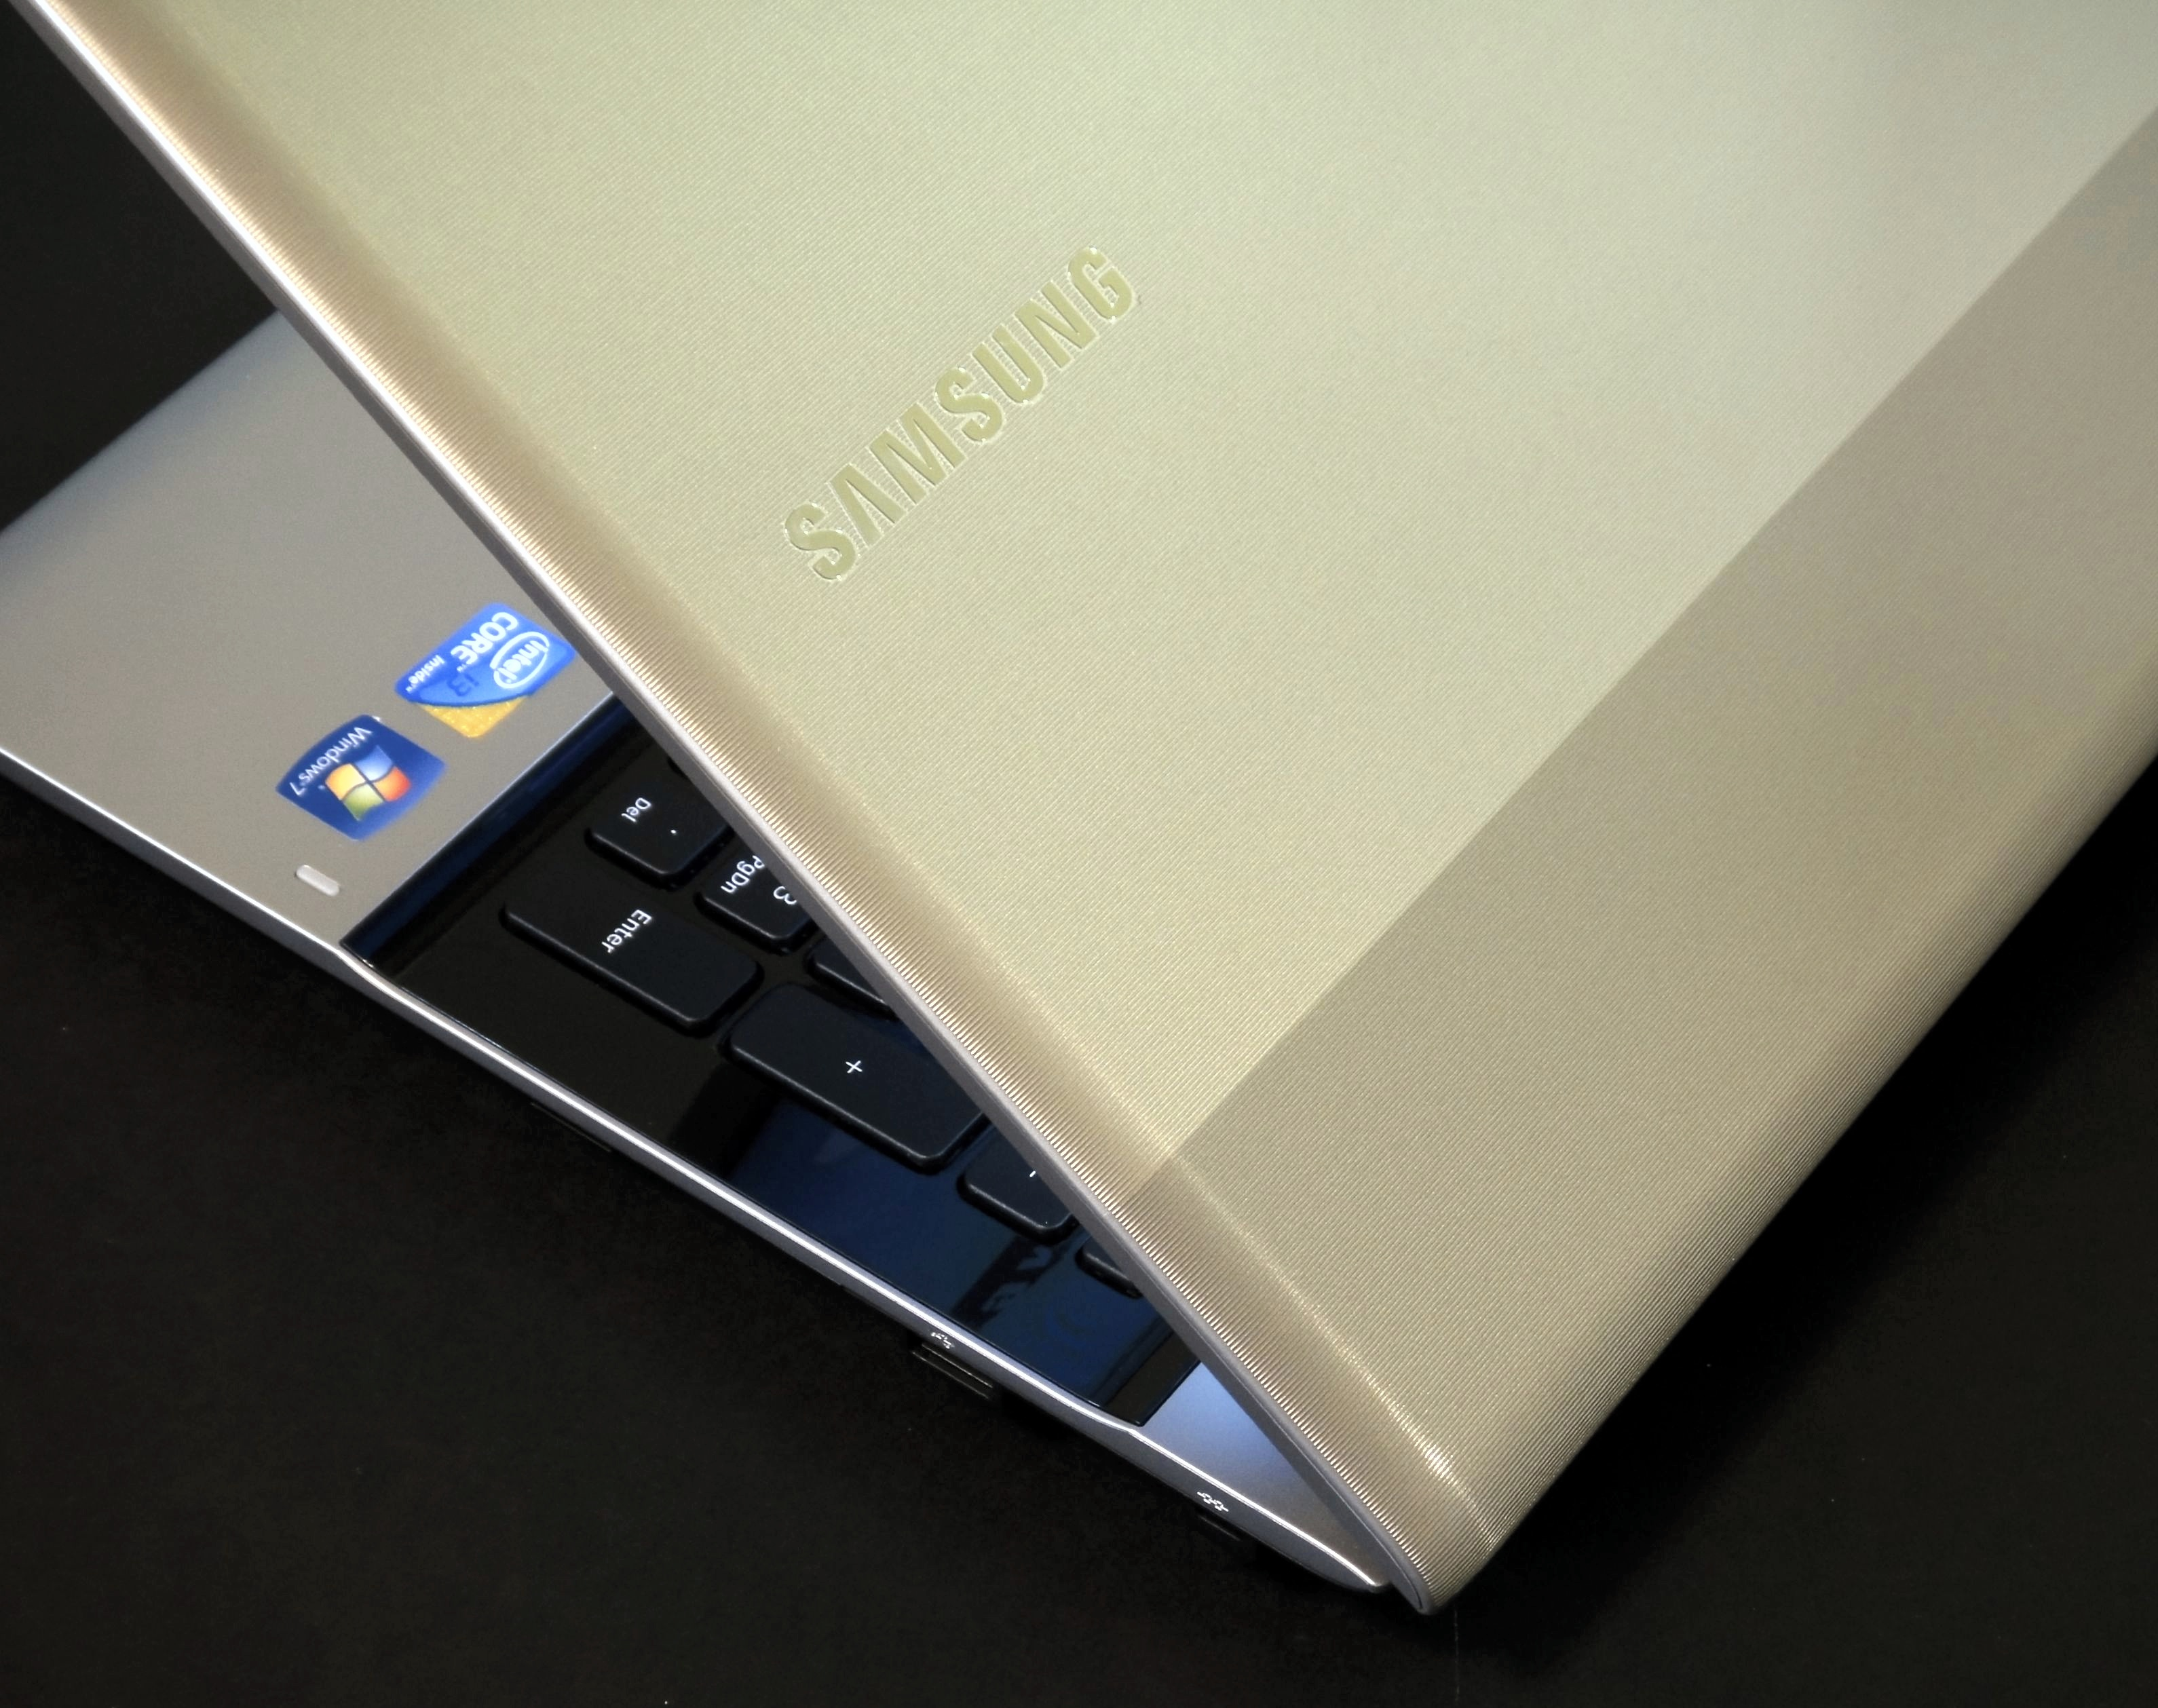 Samsung RV511 A01 Review